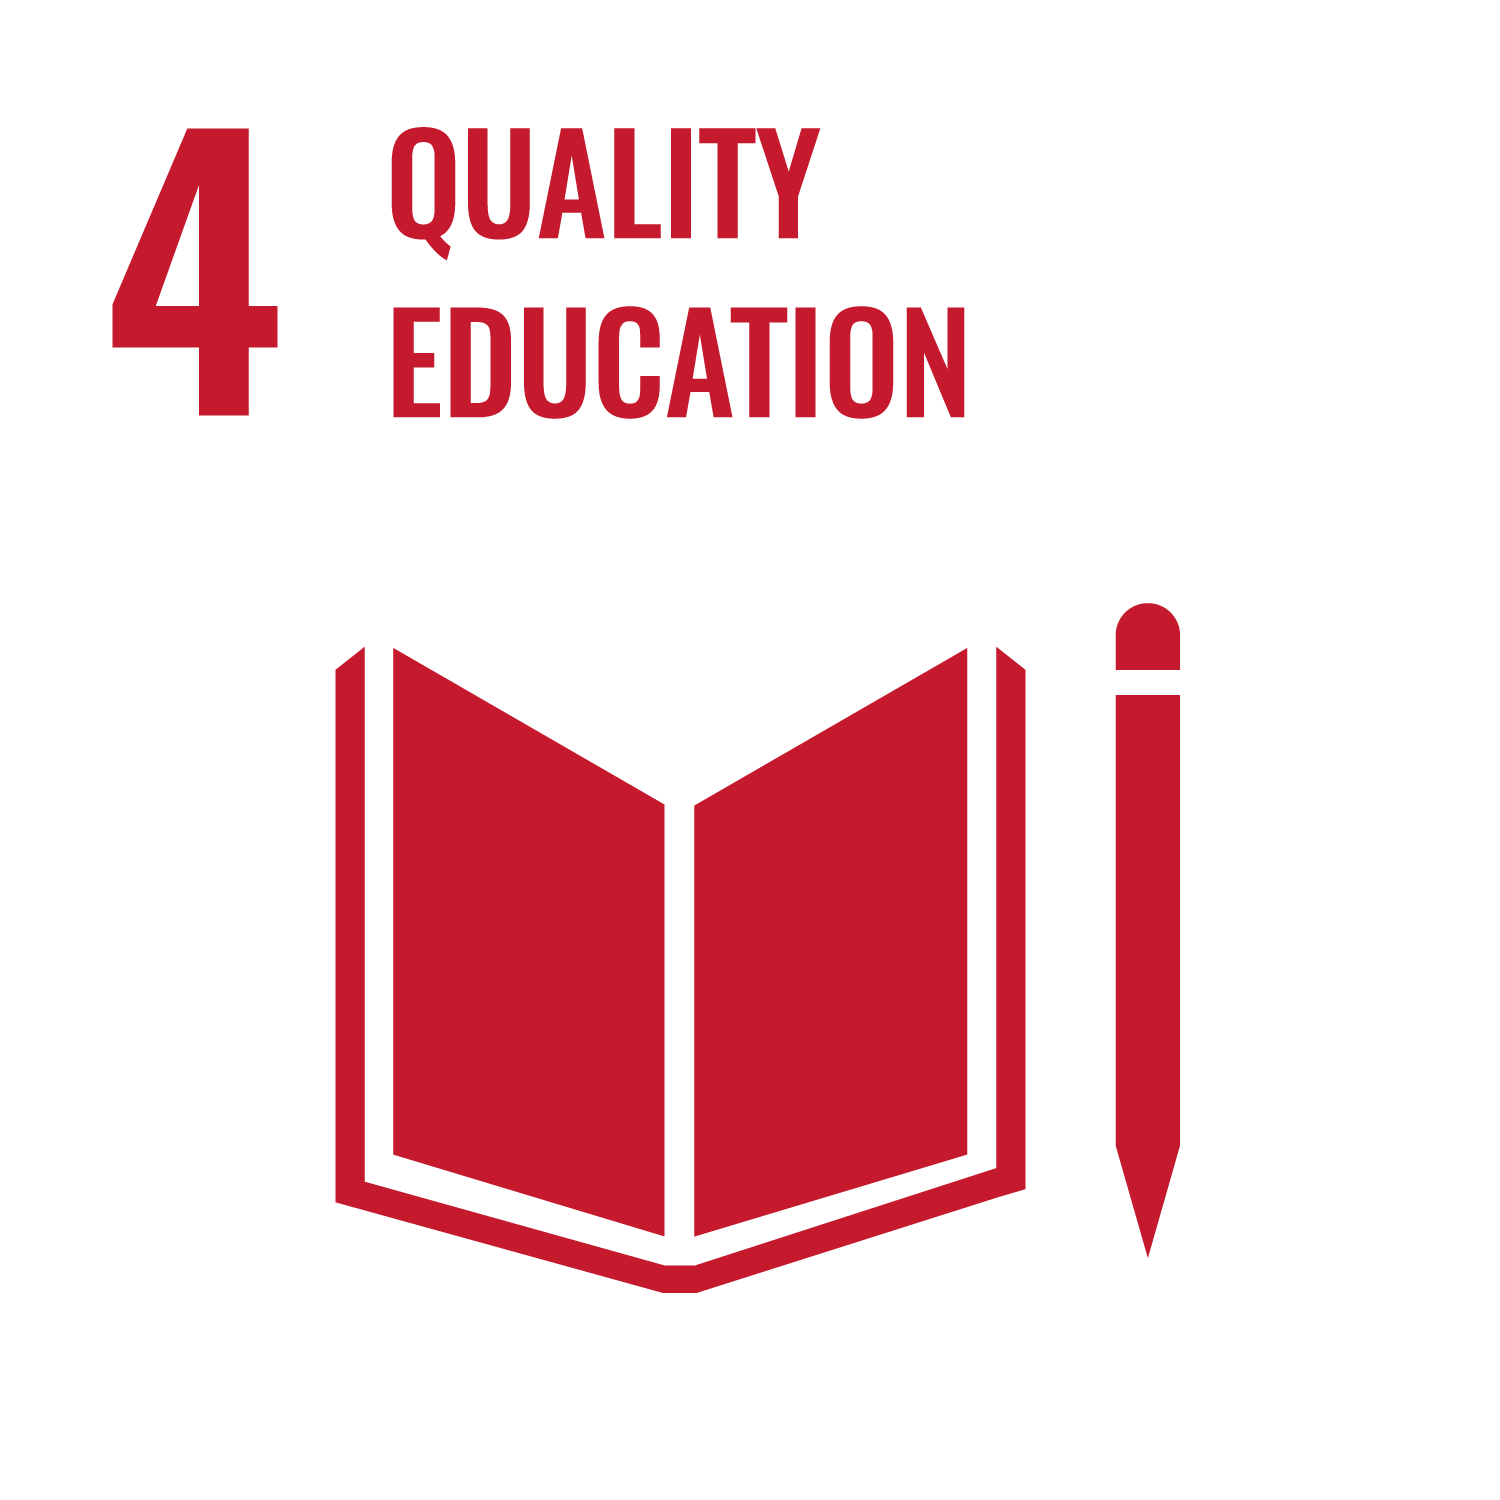 SDG4-quality-education